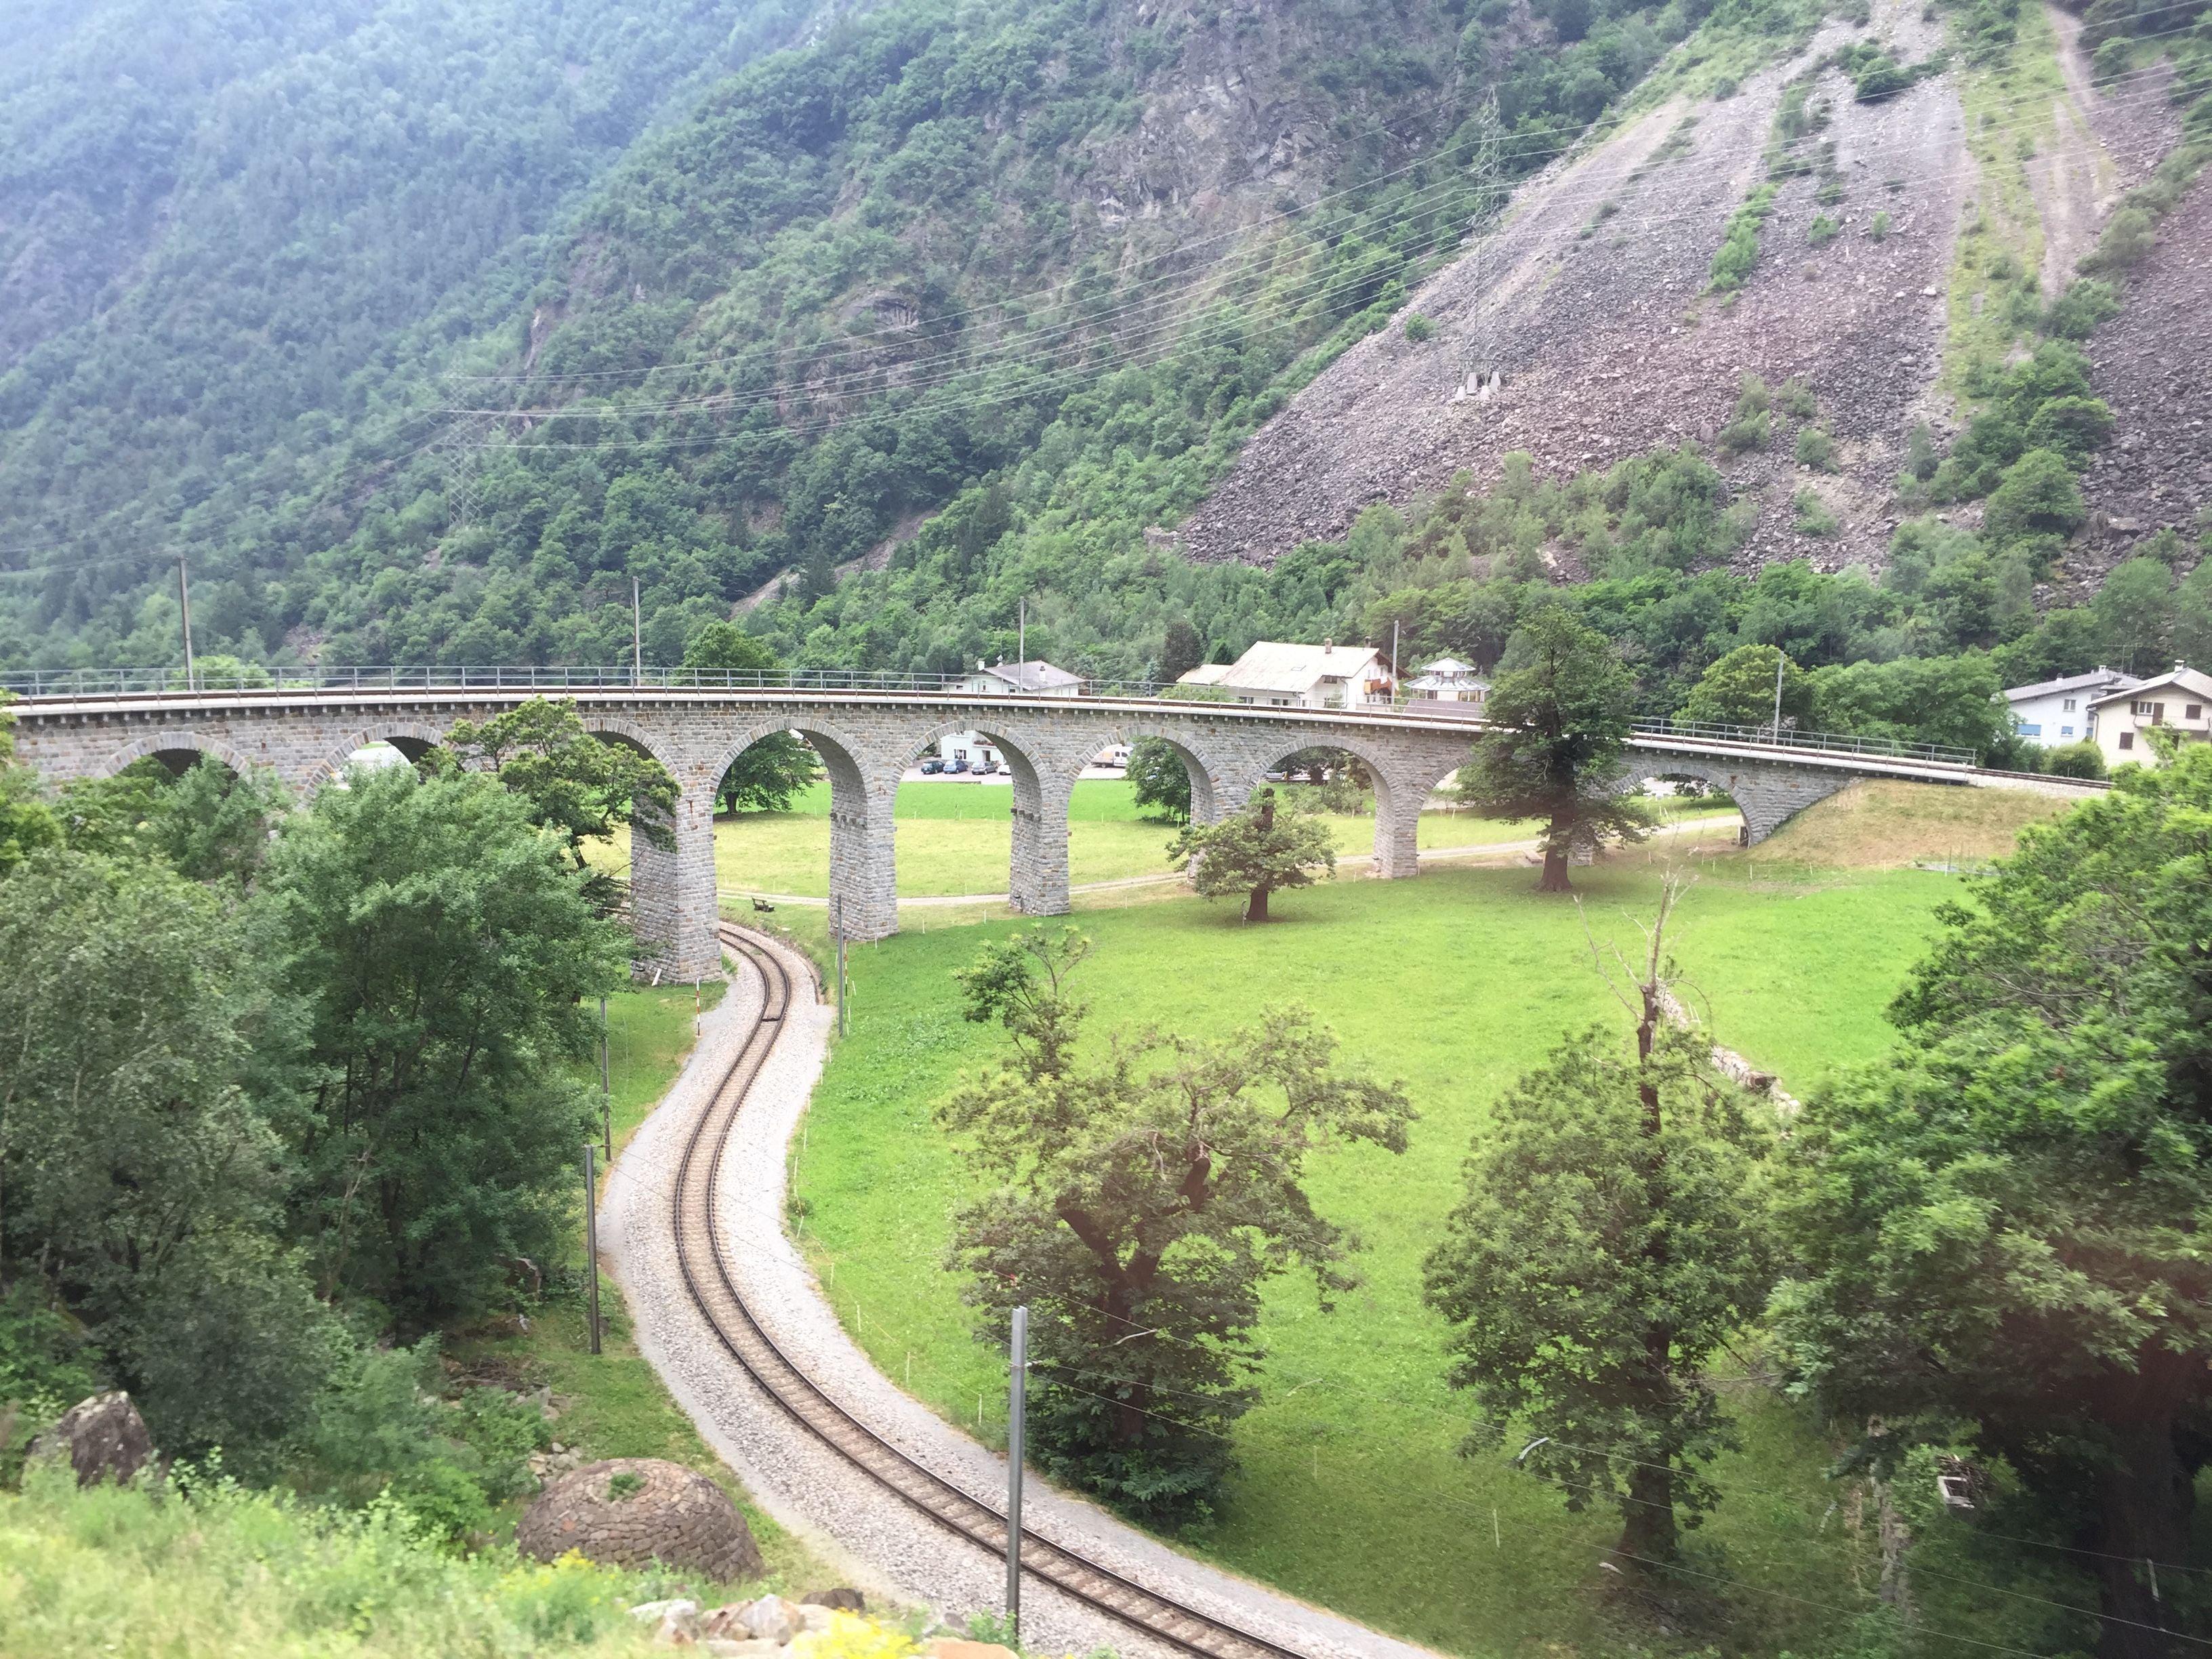 Viaducto en Bernina Express